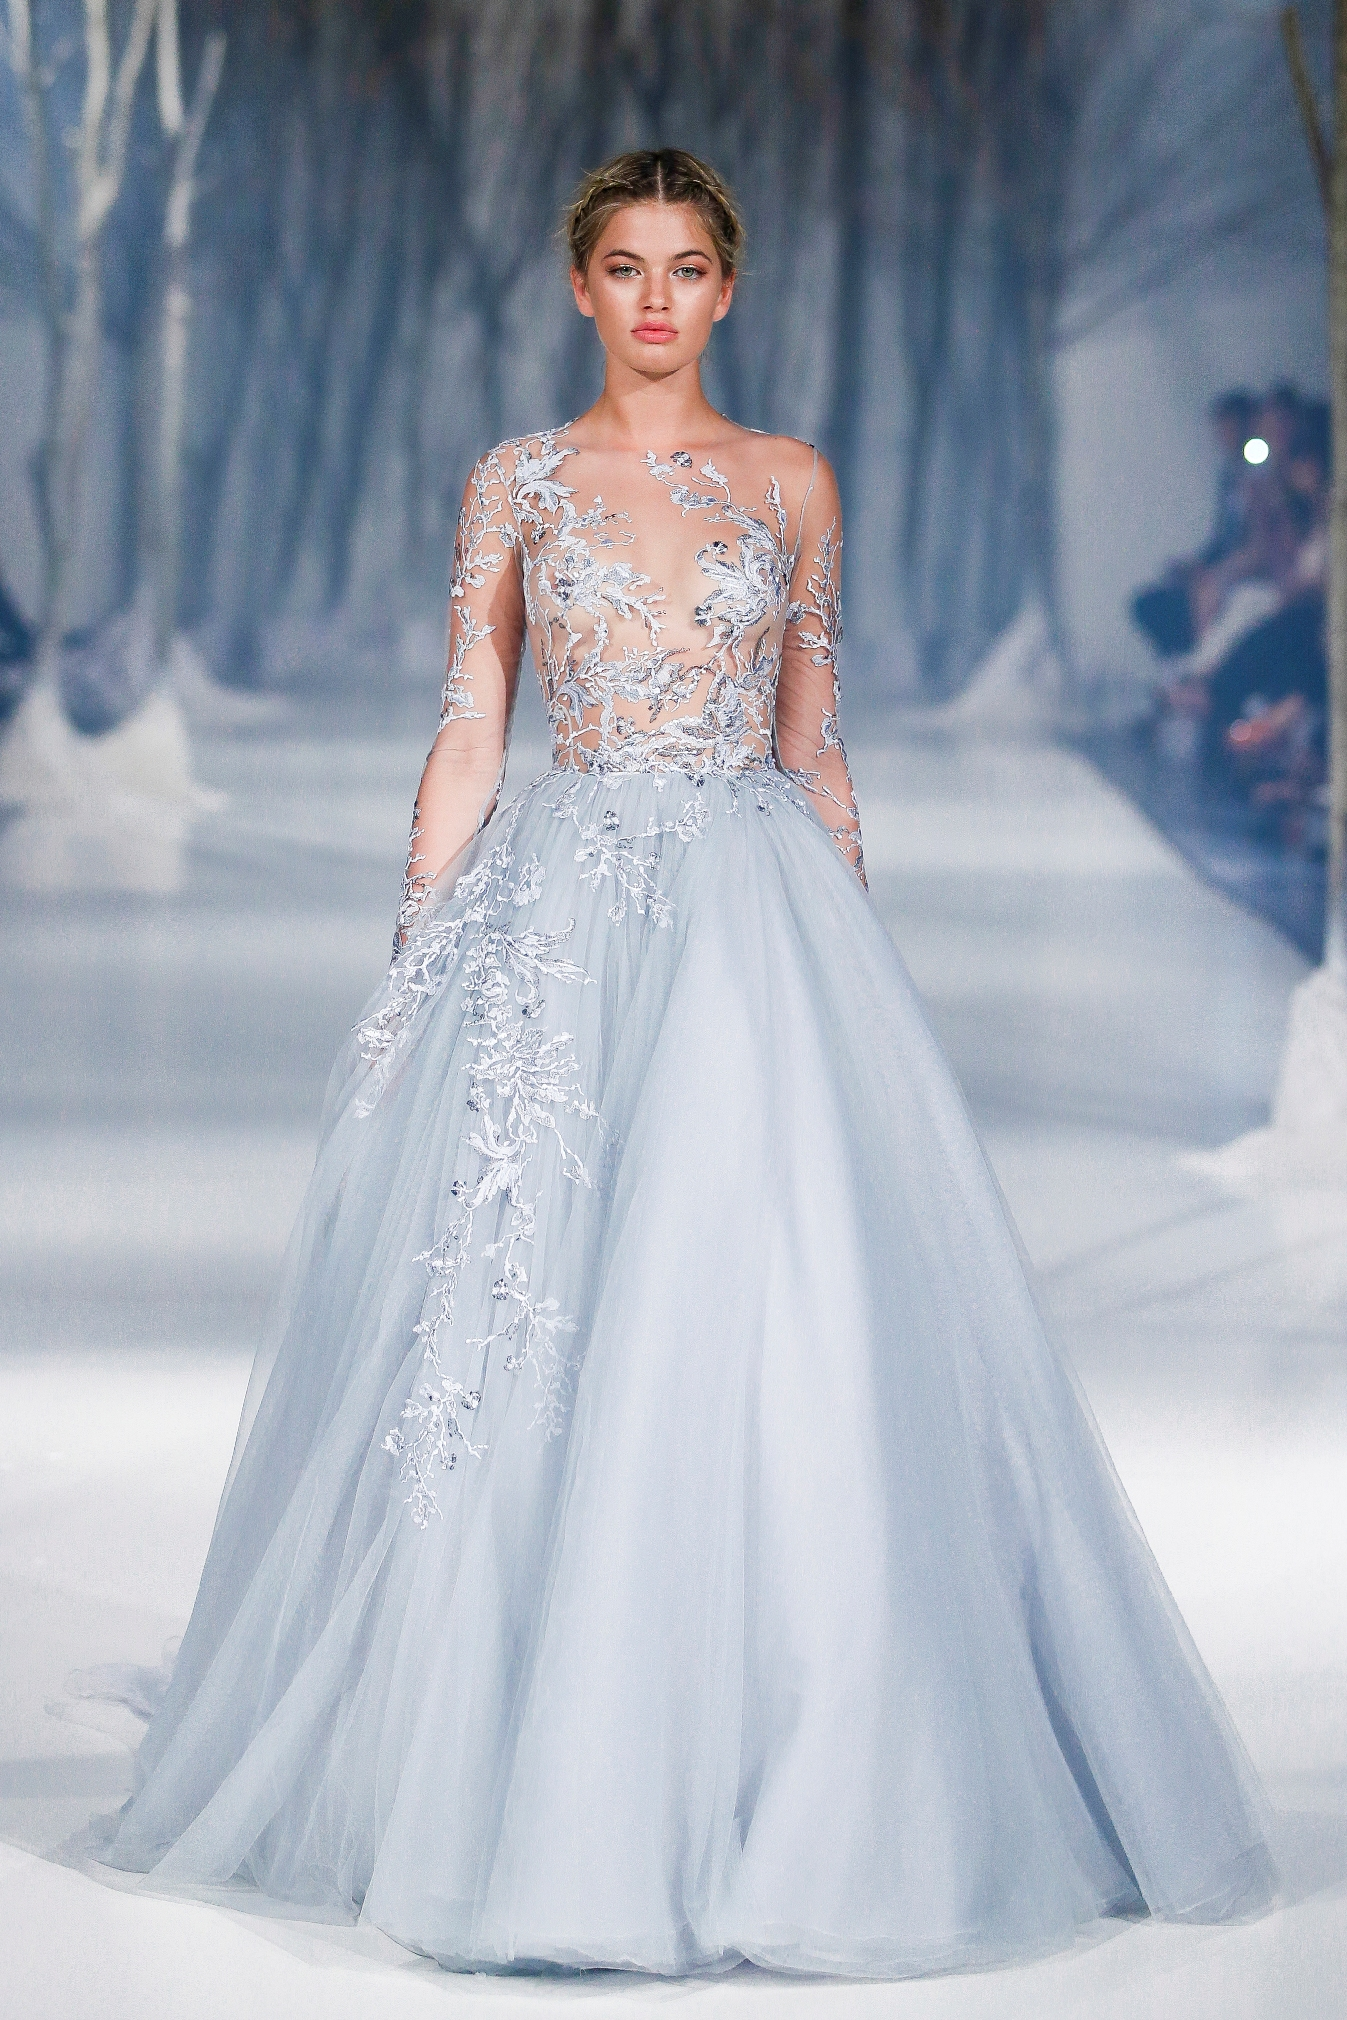 Paolo Sebastian - The Snow Maiden Autumn-Winter 2016 collection by ...